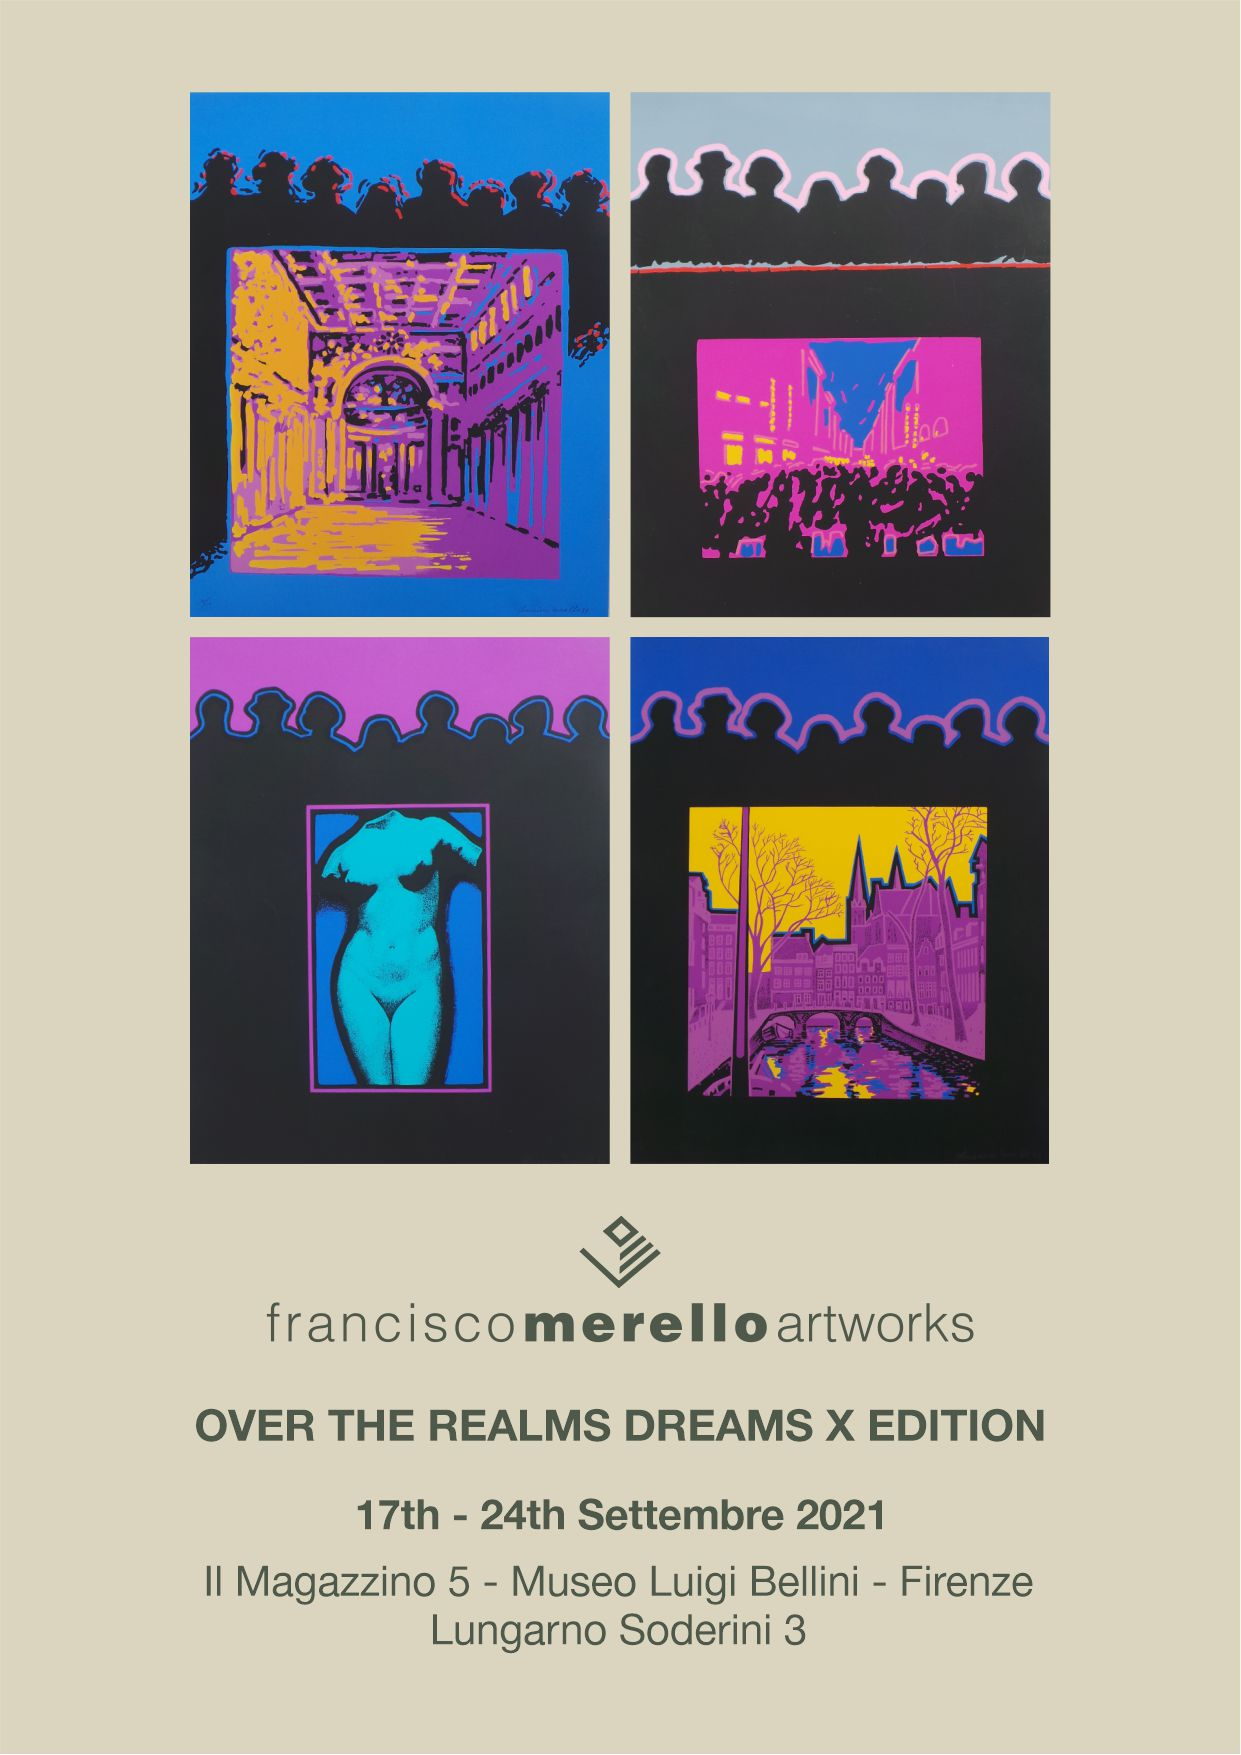 over the realms dreams x edition